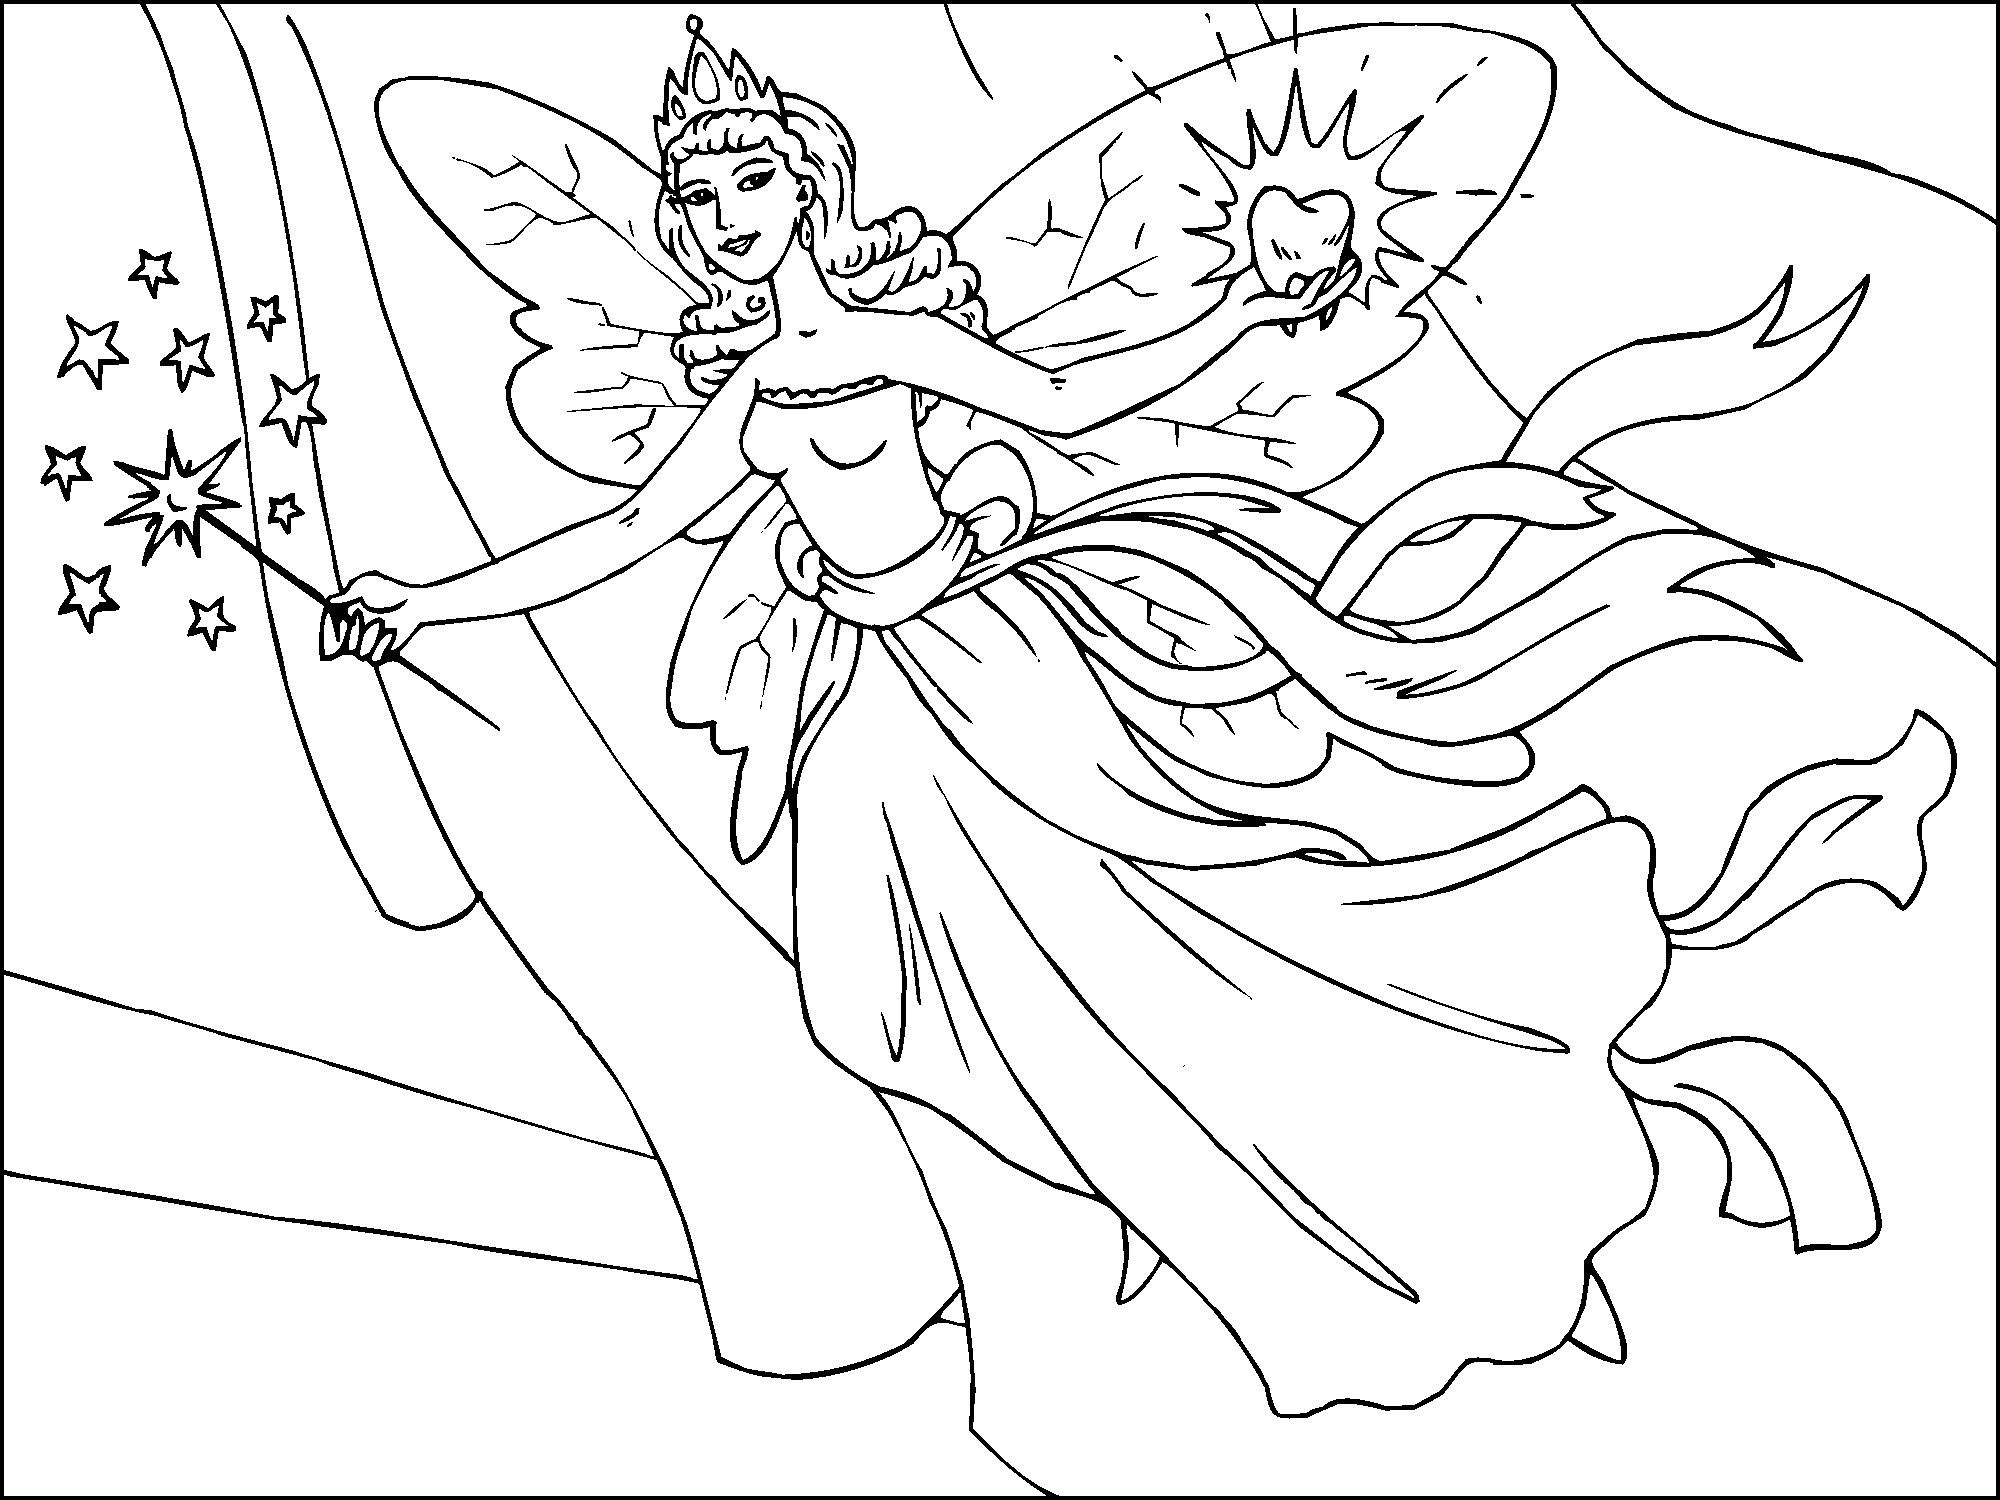 Free coloring pages to print and color - Pictures Of Fairies And To Color Free Printable Fairy Coloring Pages For Kids